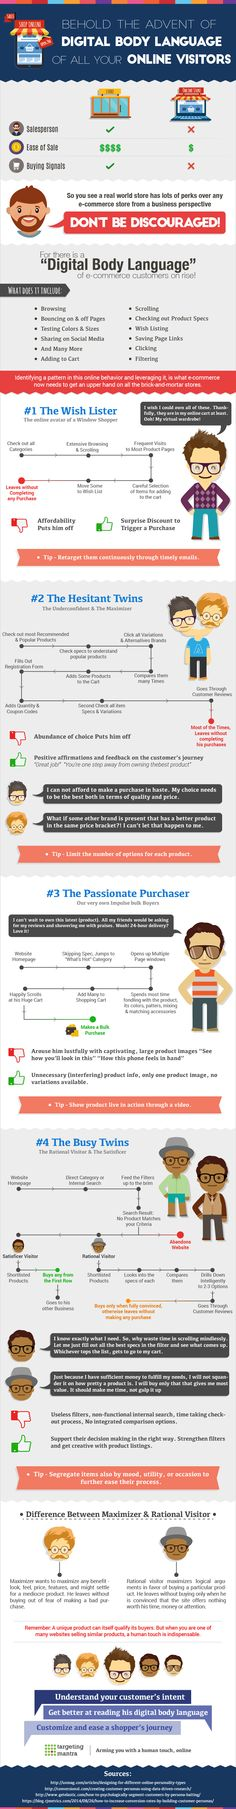 Picking Buying Signals From #Online #Shopper's Digital Body Language Just Got Easier [#Infographic]